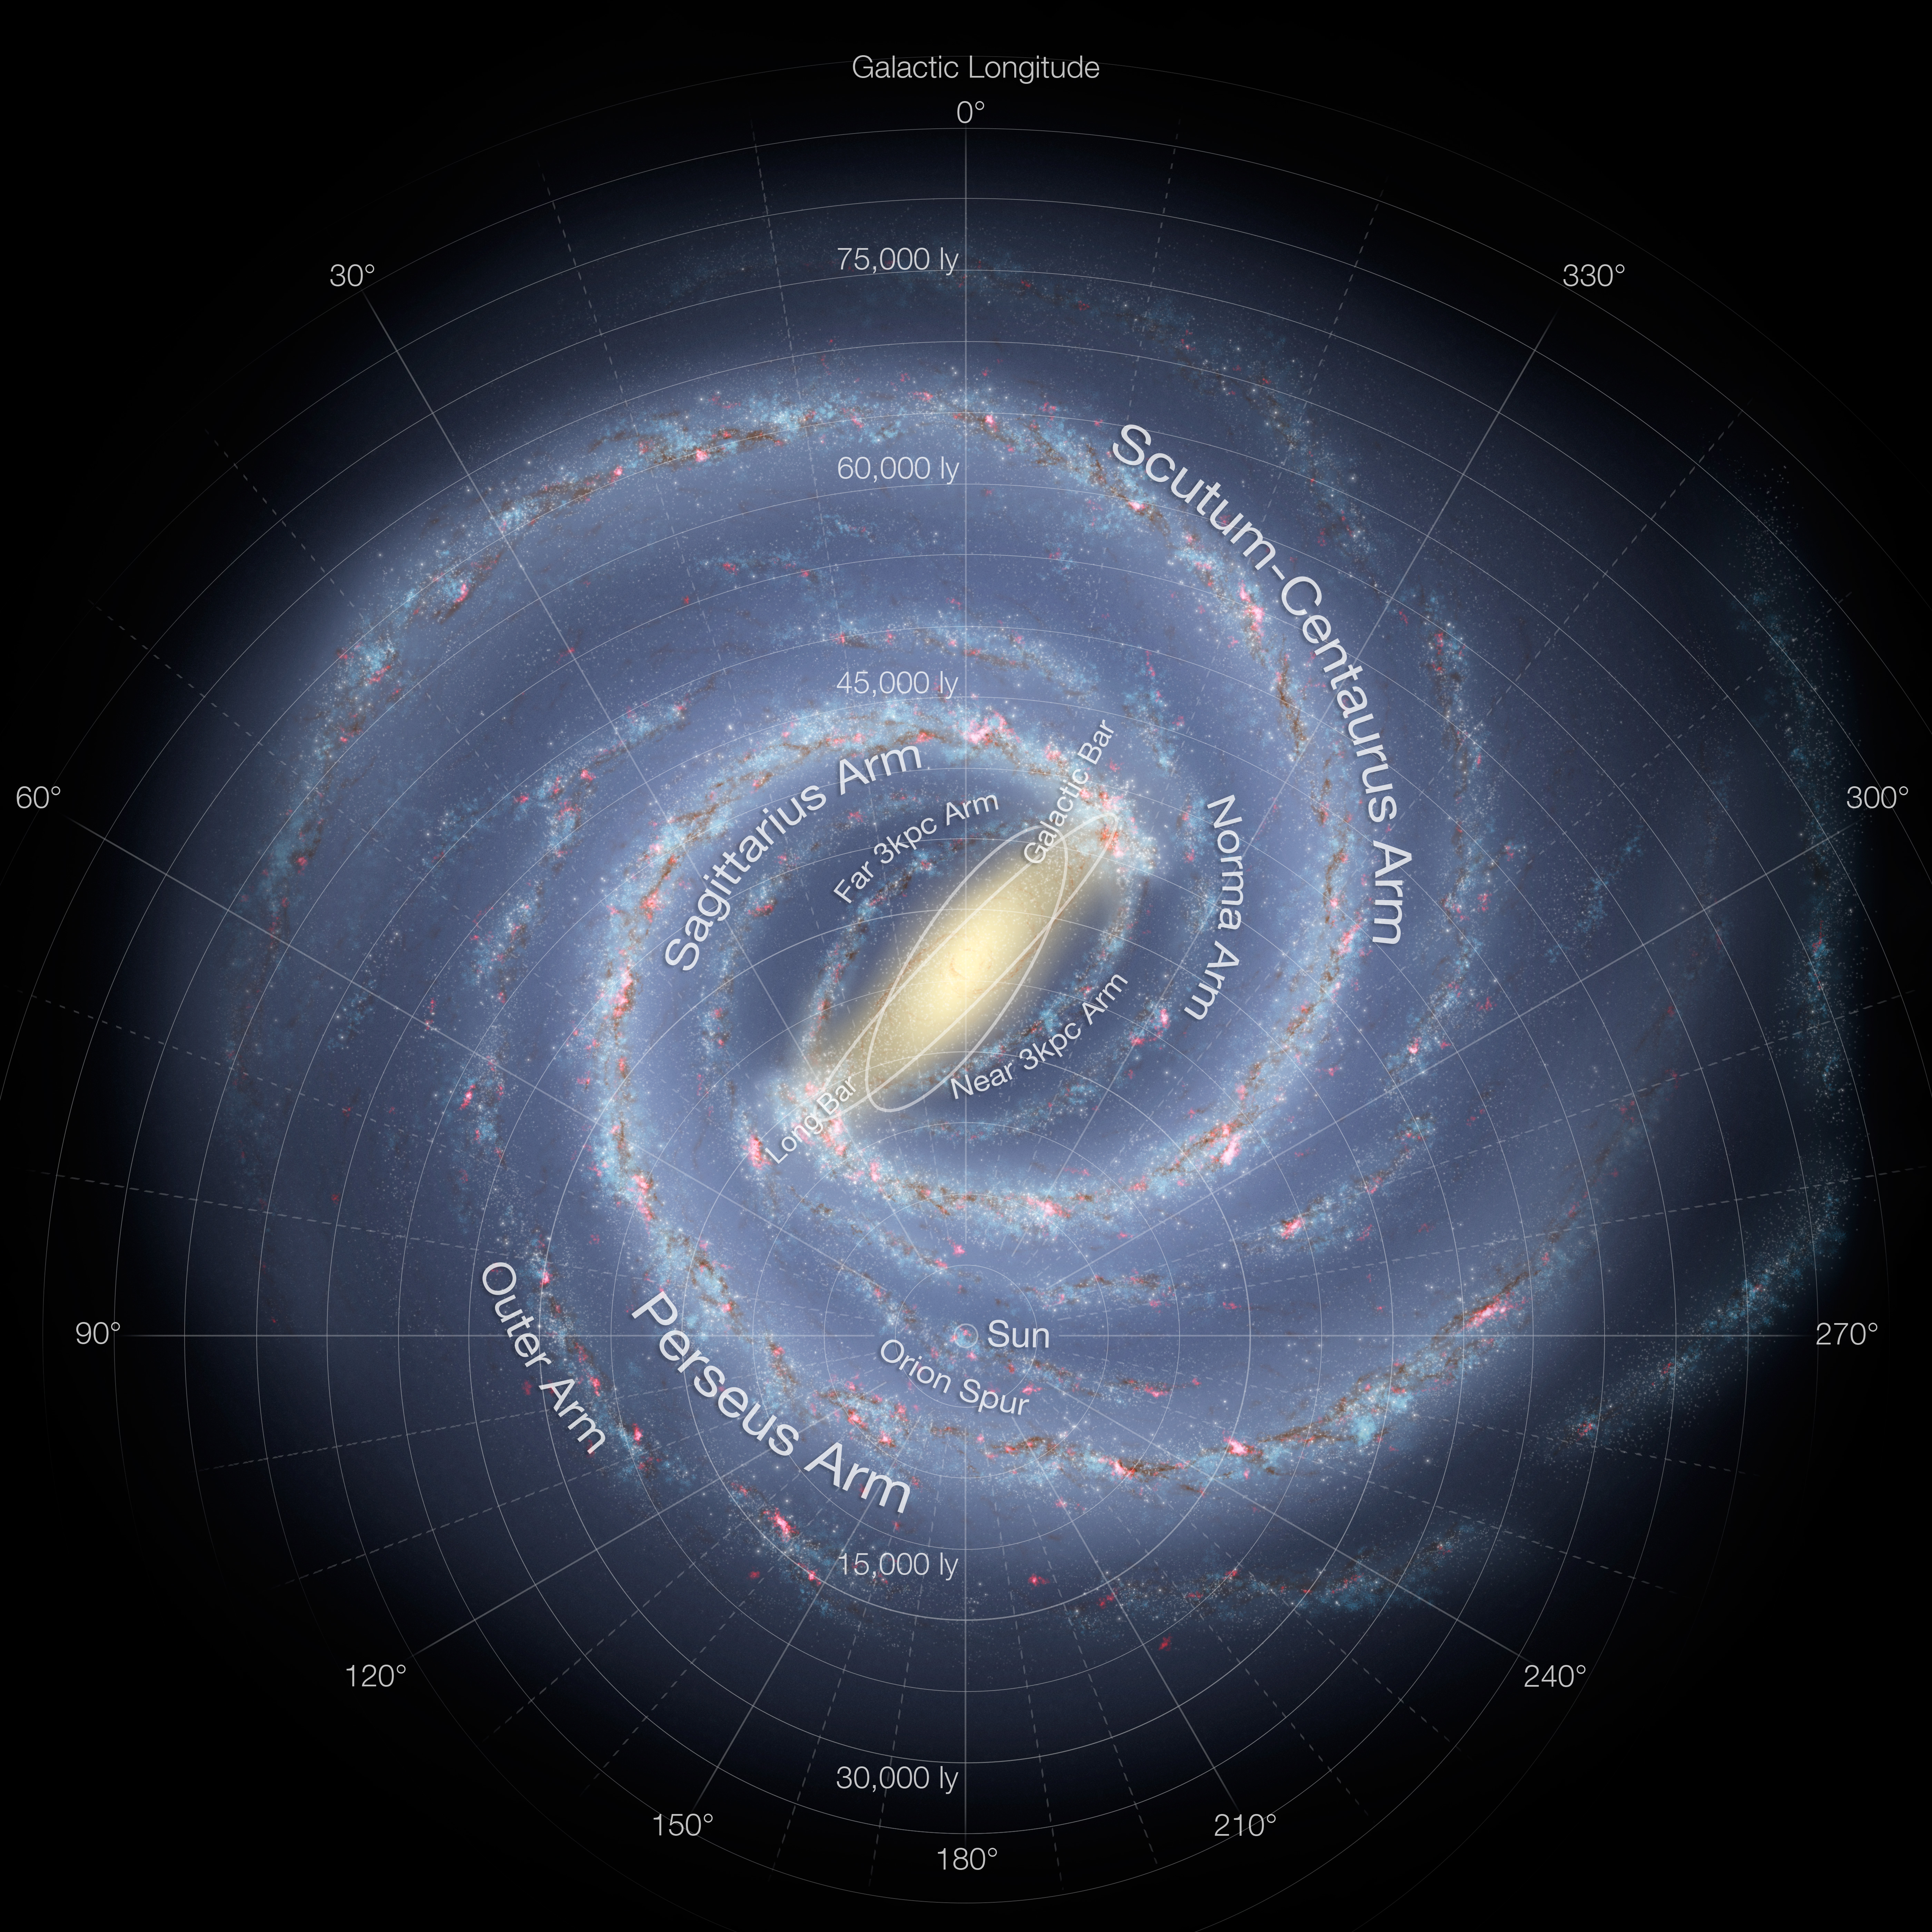 Milky Way diagram